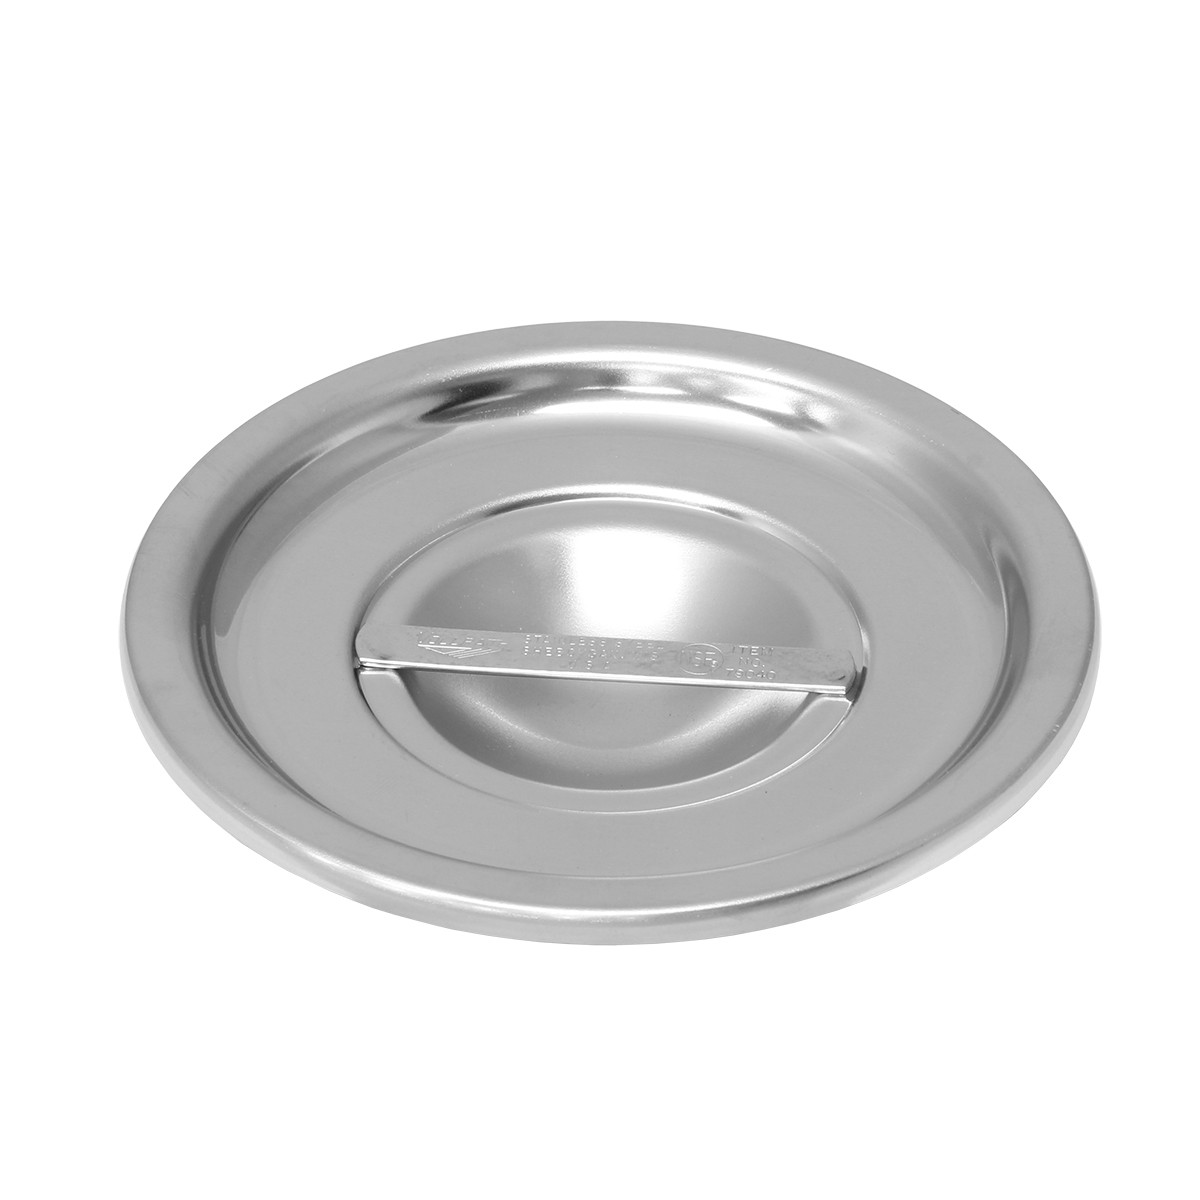 Stainless Steel Covers - 4.75 Qts